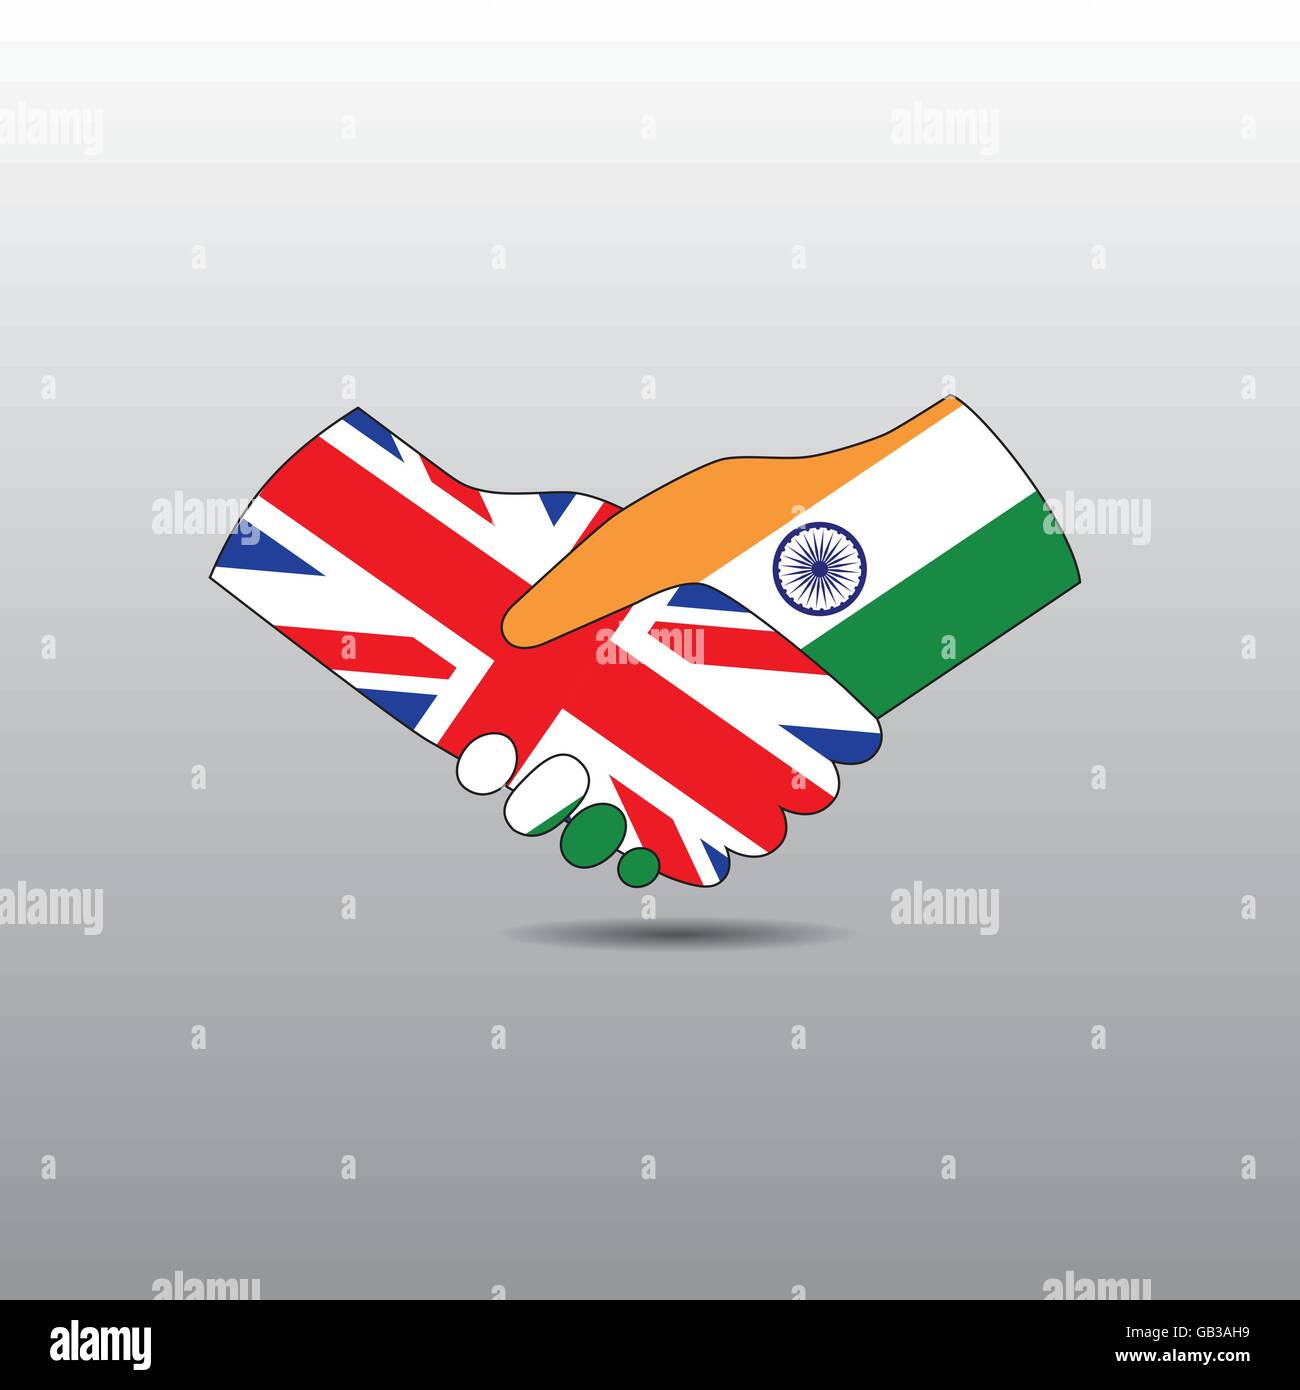 World peace icon in light gray background, India handshake with England - Stock Vector